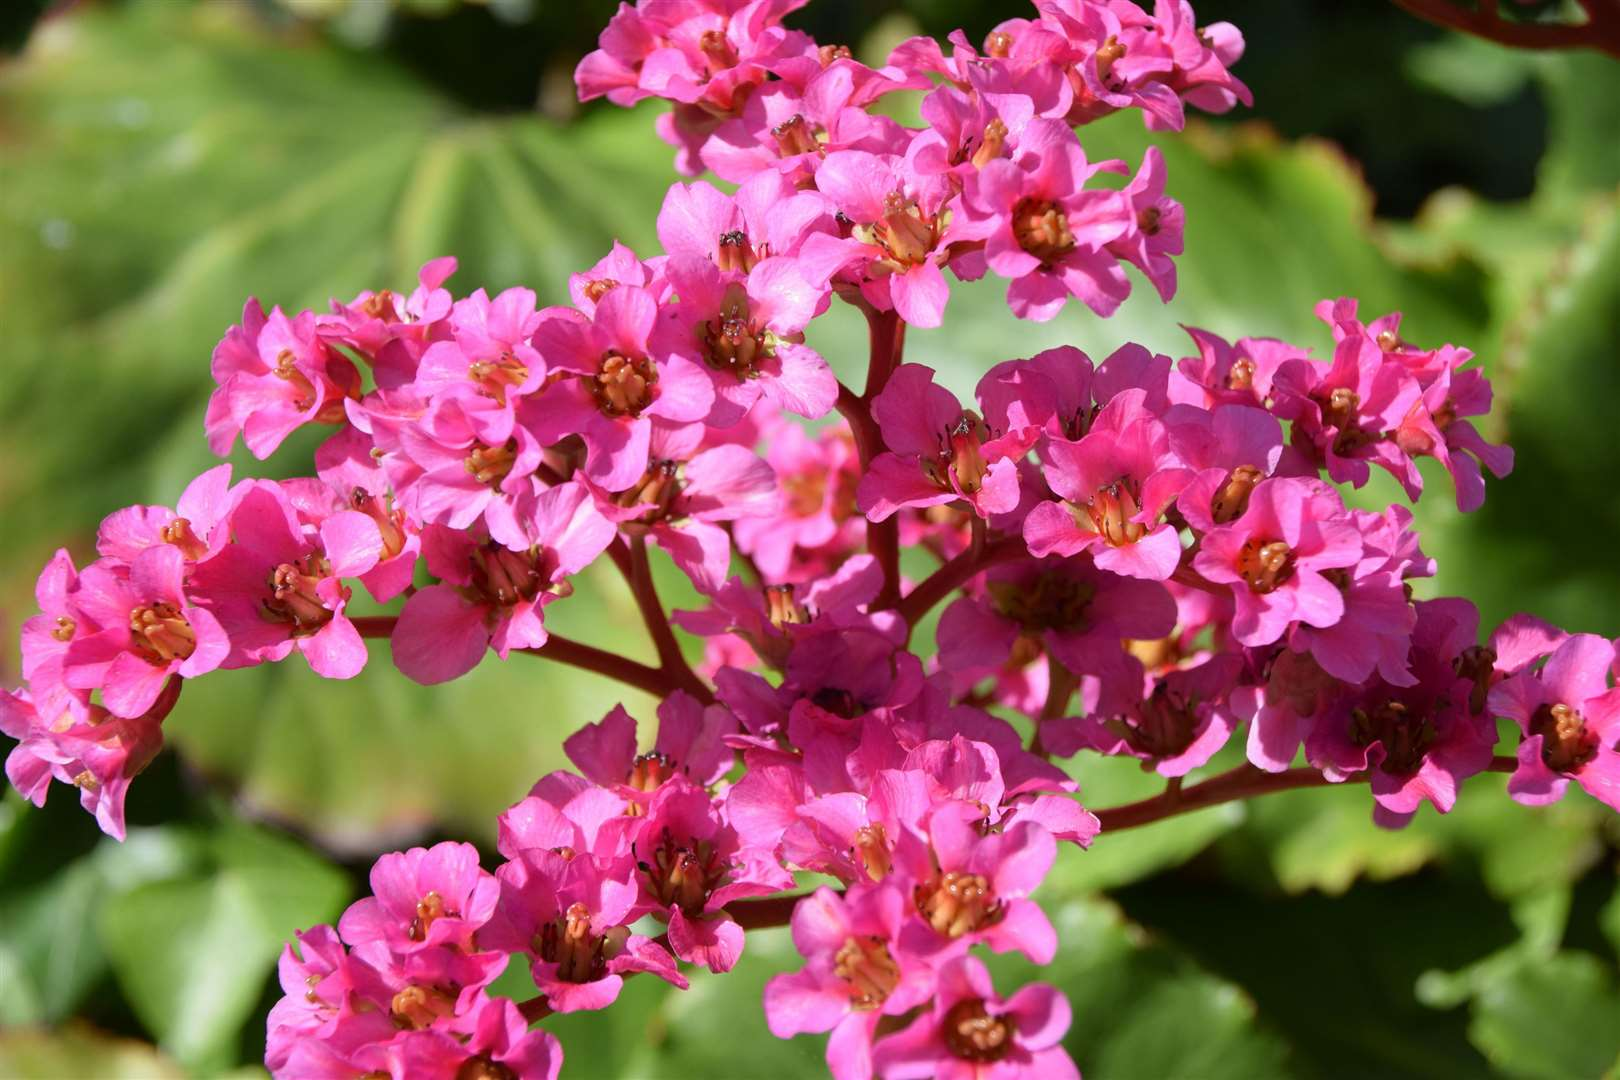 Many perennials make excellent permanent edging, such as Bergenia cordifolia 'Purpurea'. Picture: iStock/PA